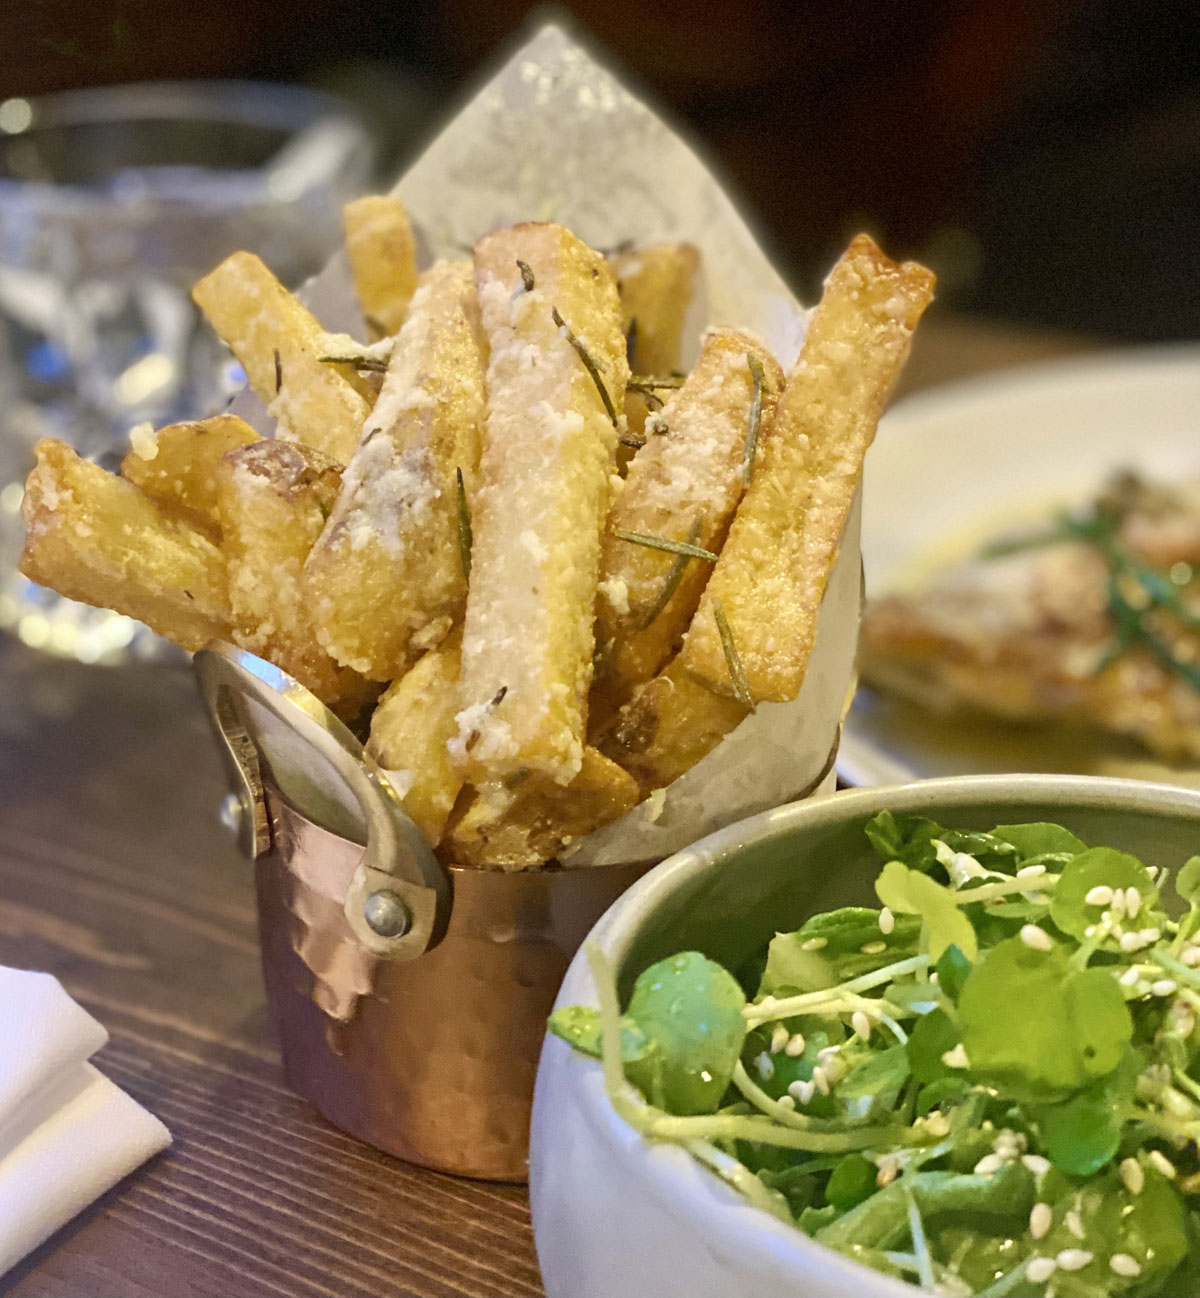 Chips and Salad - The Chesterfield Arms Mayfair